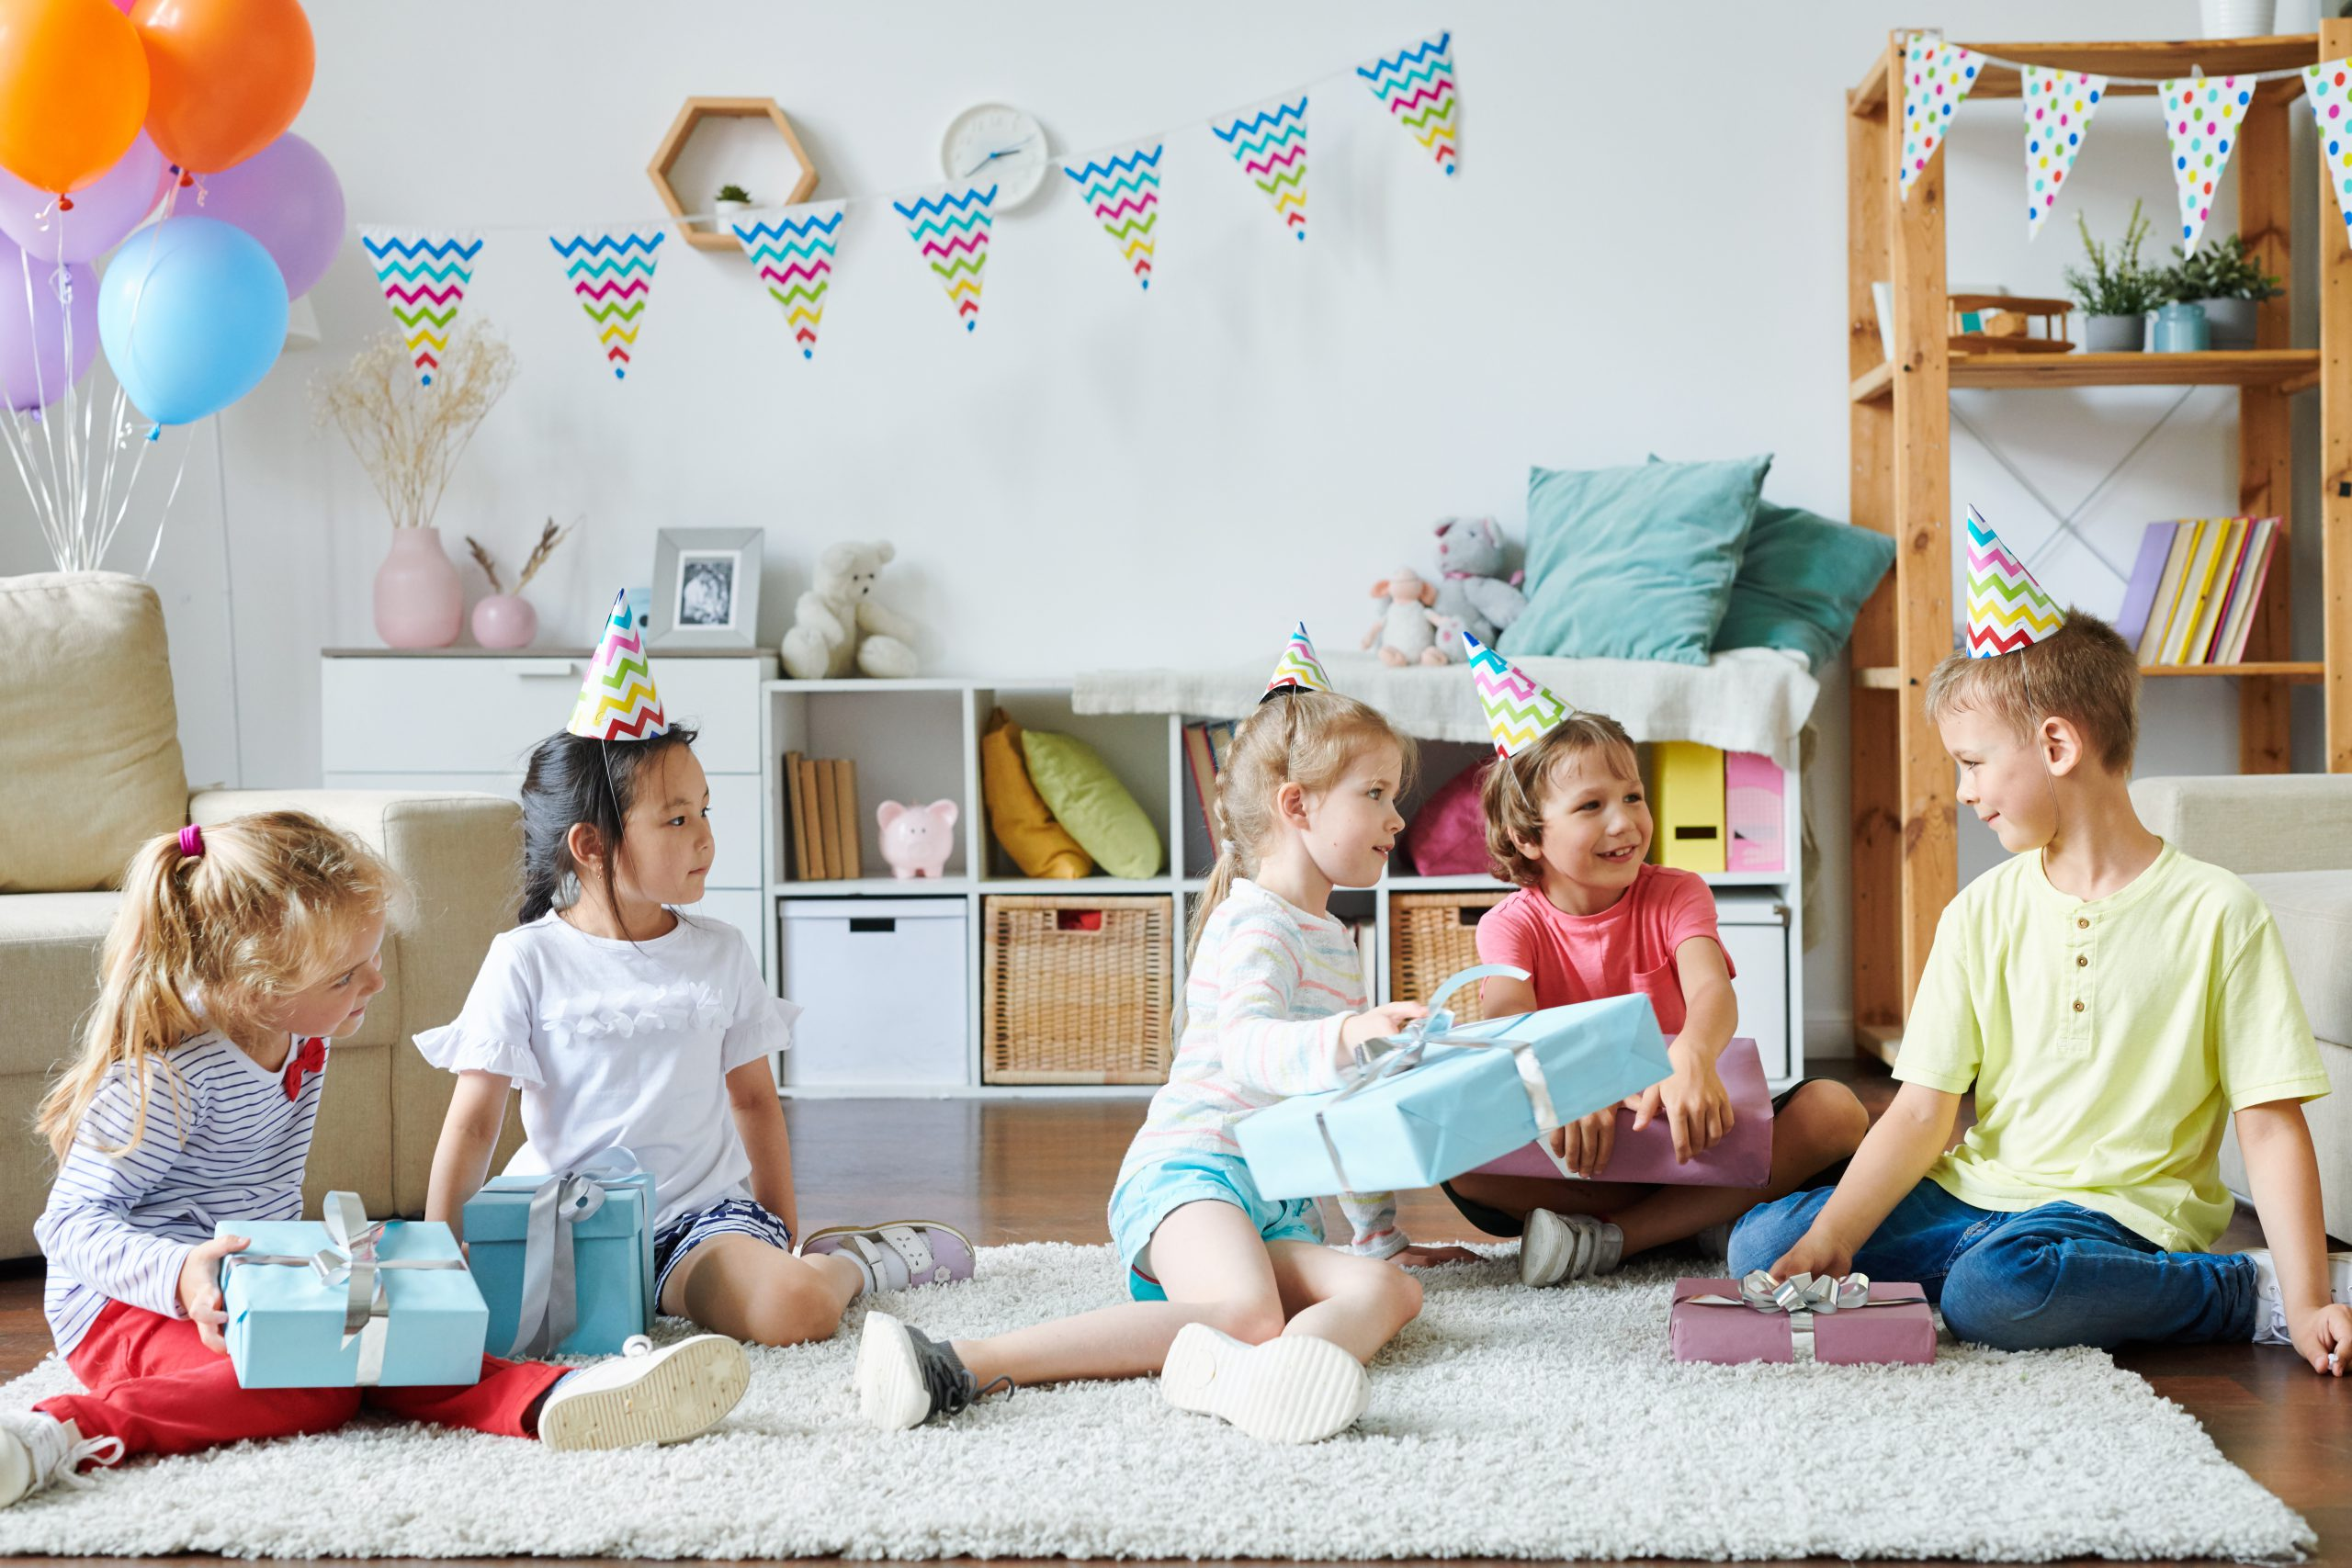 Group of happy adorable kids in birthday caps sitting on rug while going to unpack their gifts at home party